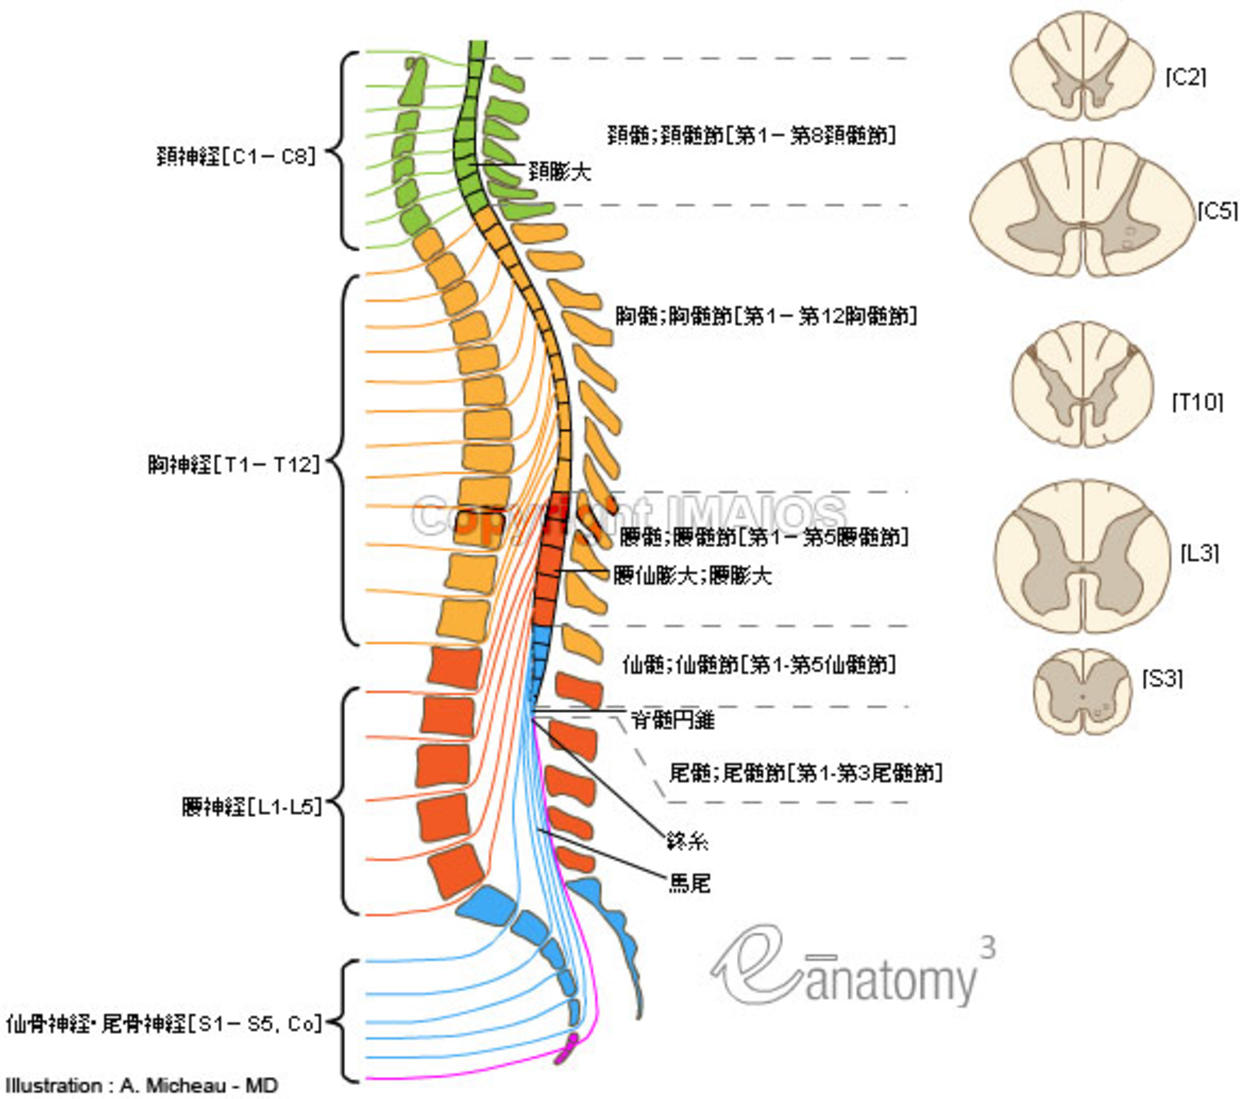 spinal cord and nerves diagram relay wiring 4 pole リンクテーブル